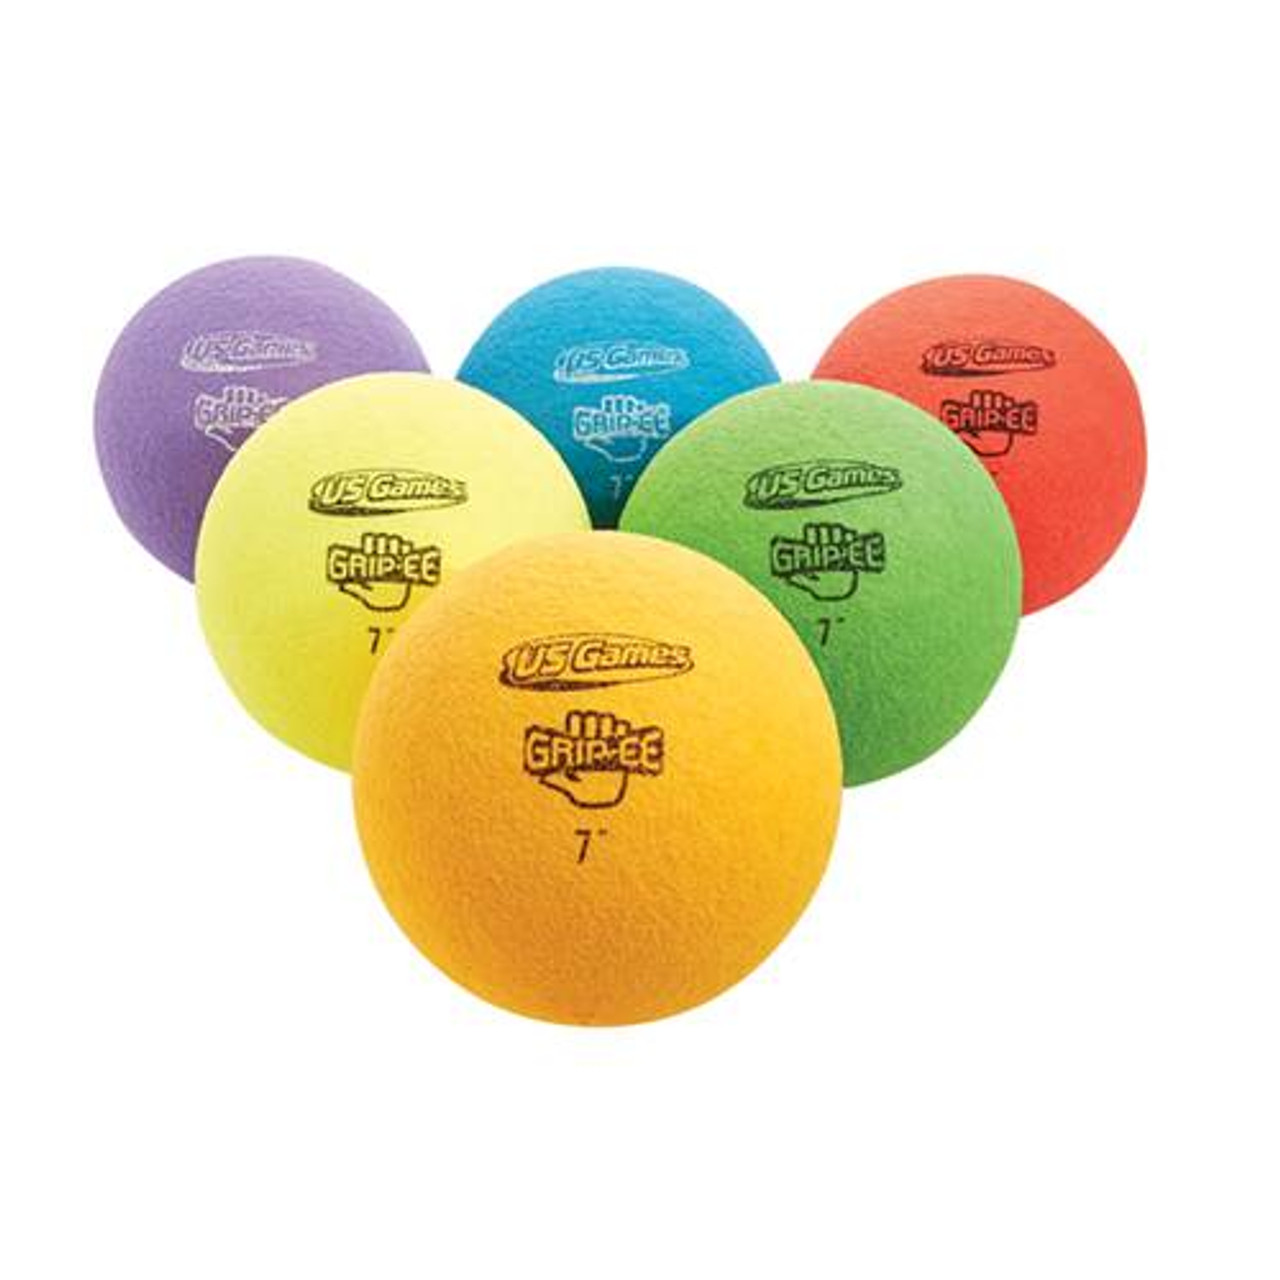 """Grippee 8.25"""" Ball Prism Pack"""